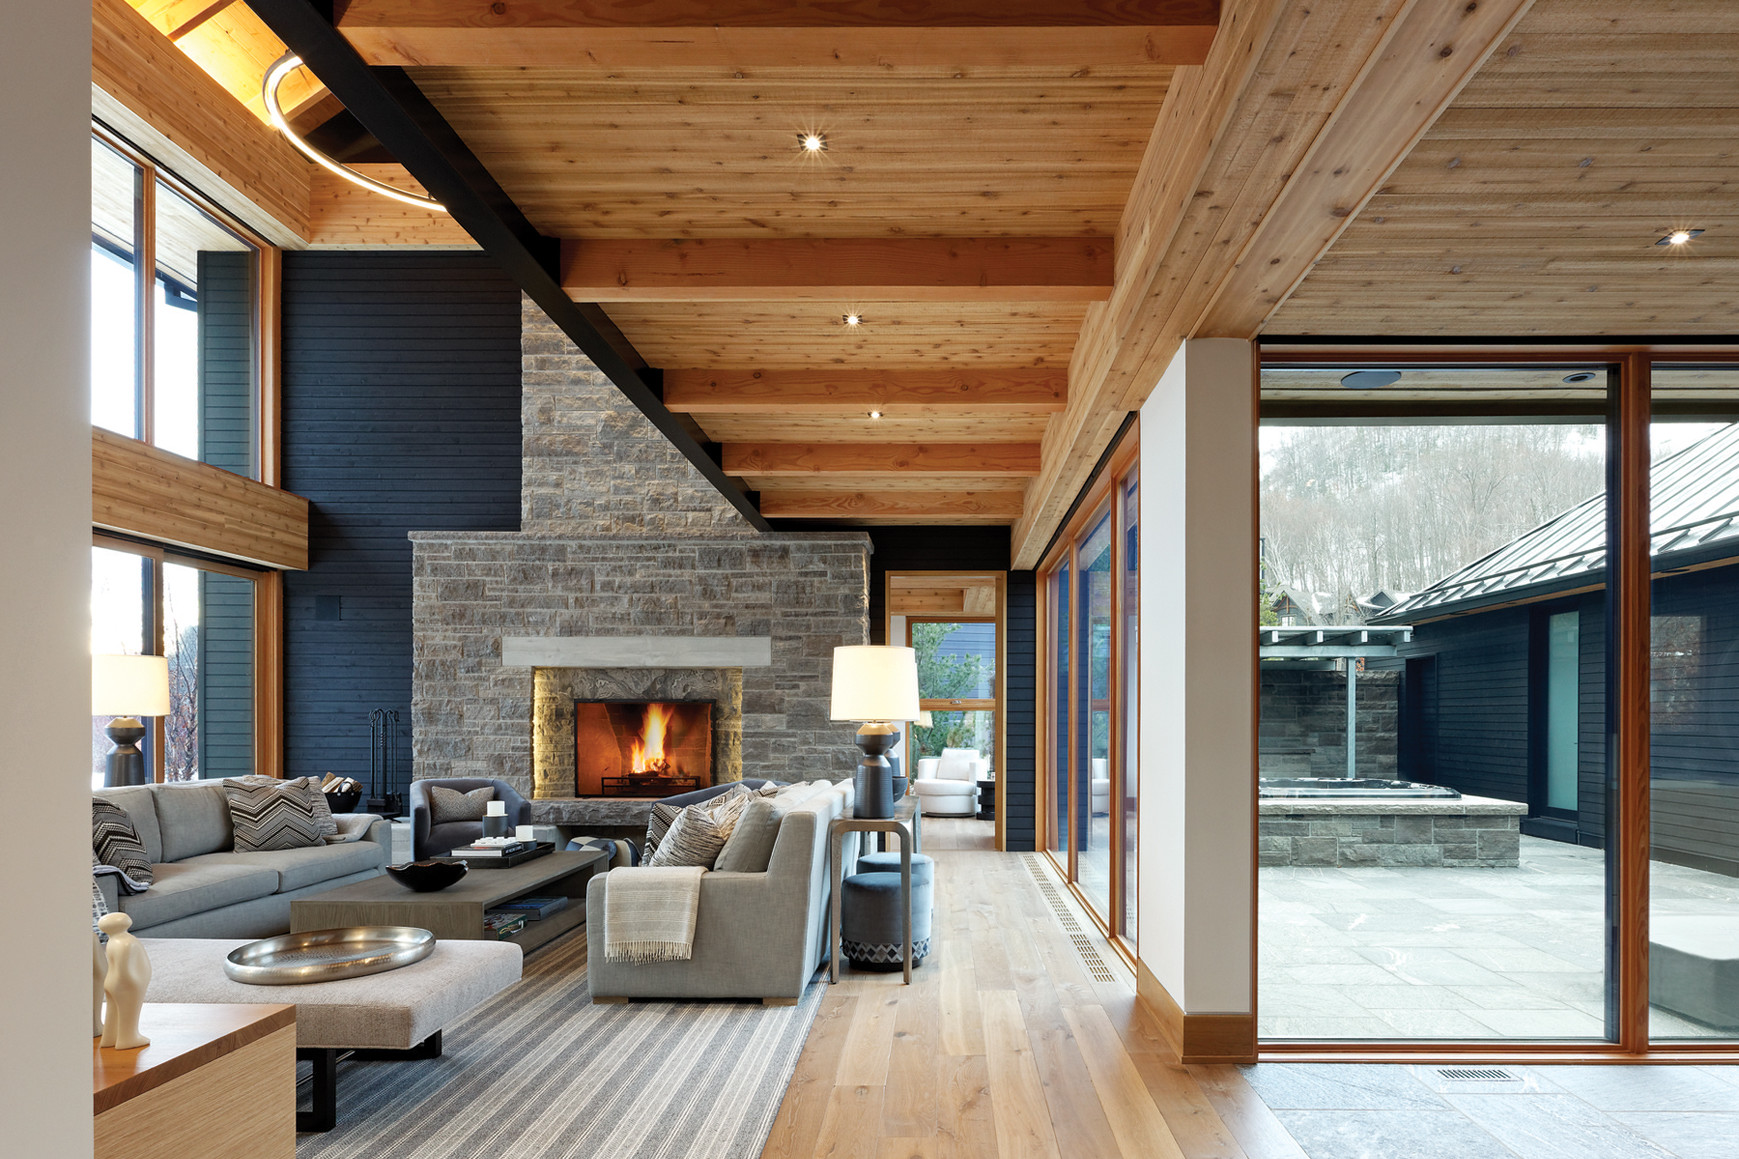 Living room with stone fireplace and couch seating overlooking glazed interior courtyard with hot tub on the right